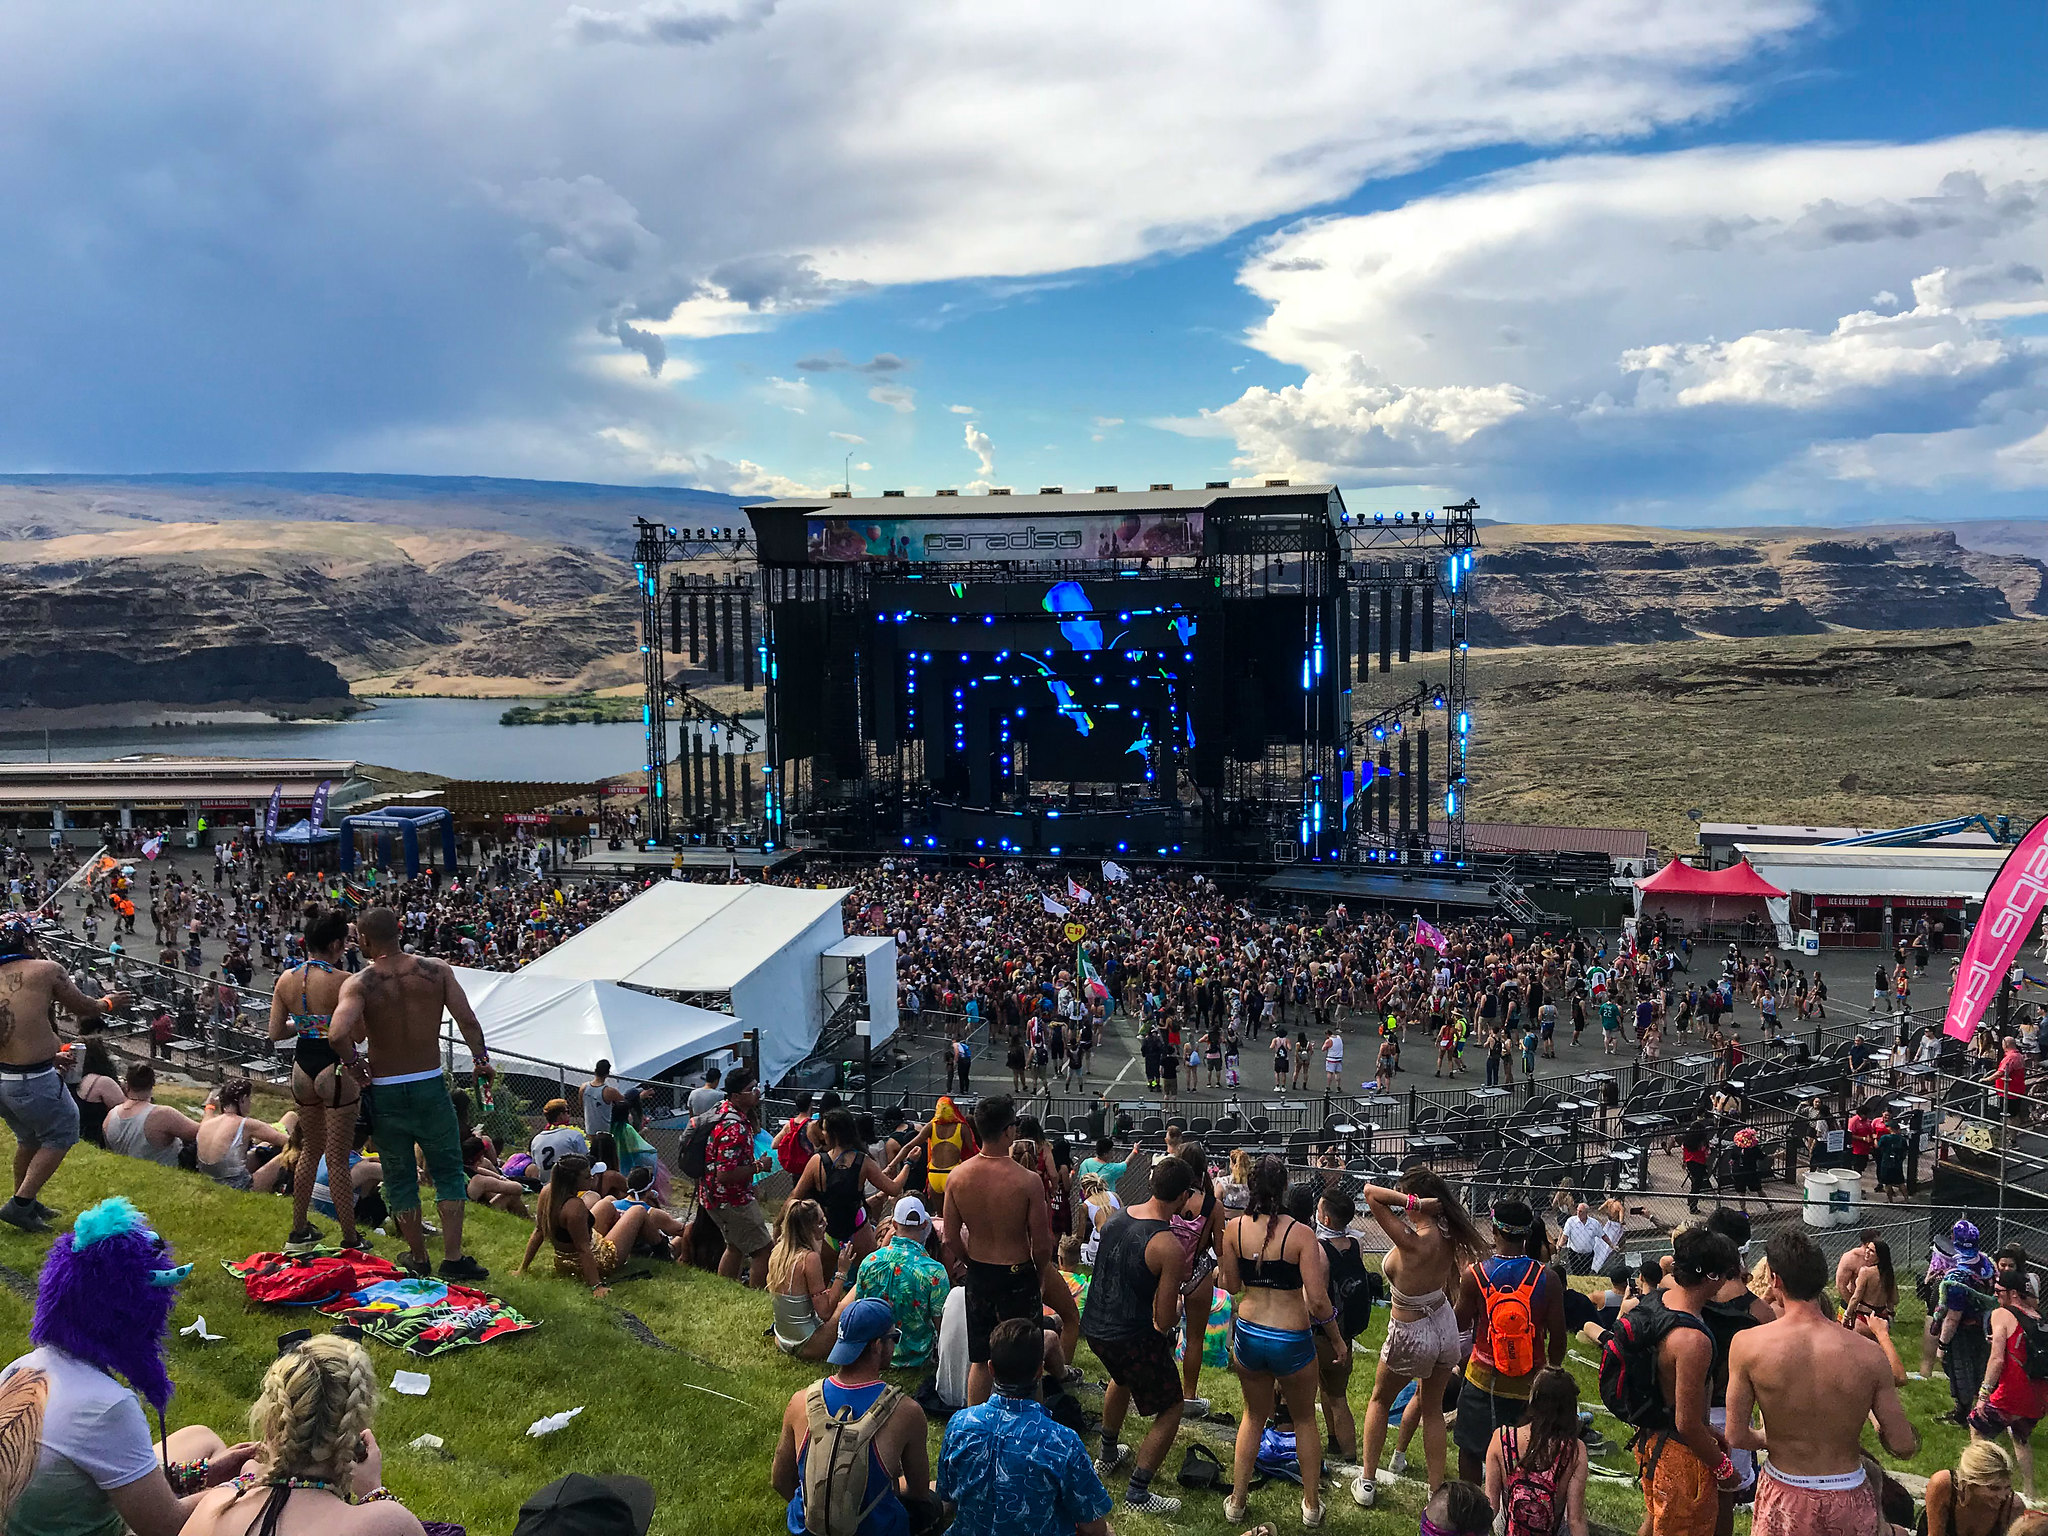 Paradiso Festival Tips: What We Learned at the Gorge - Sunshowers